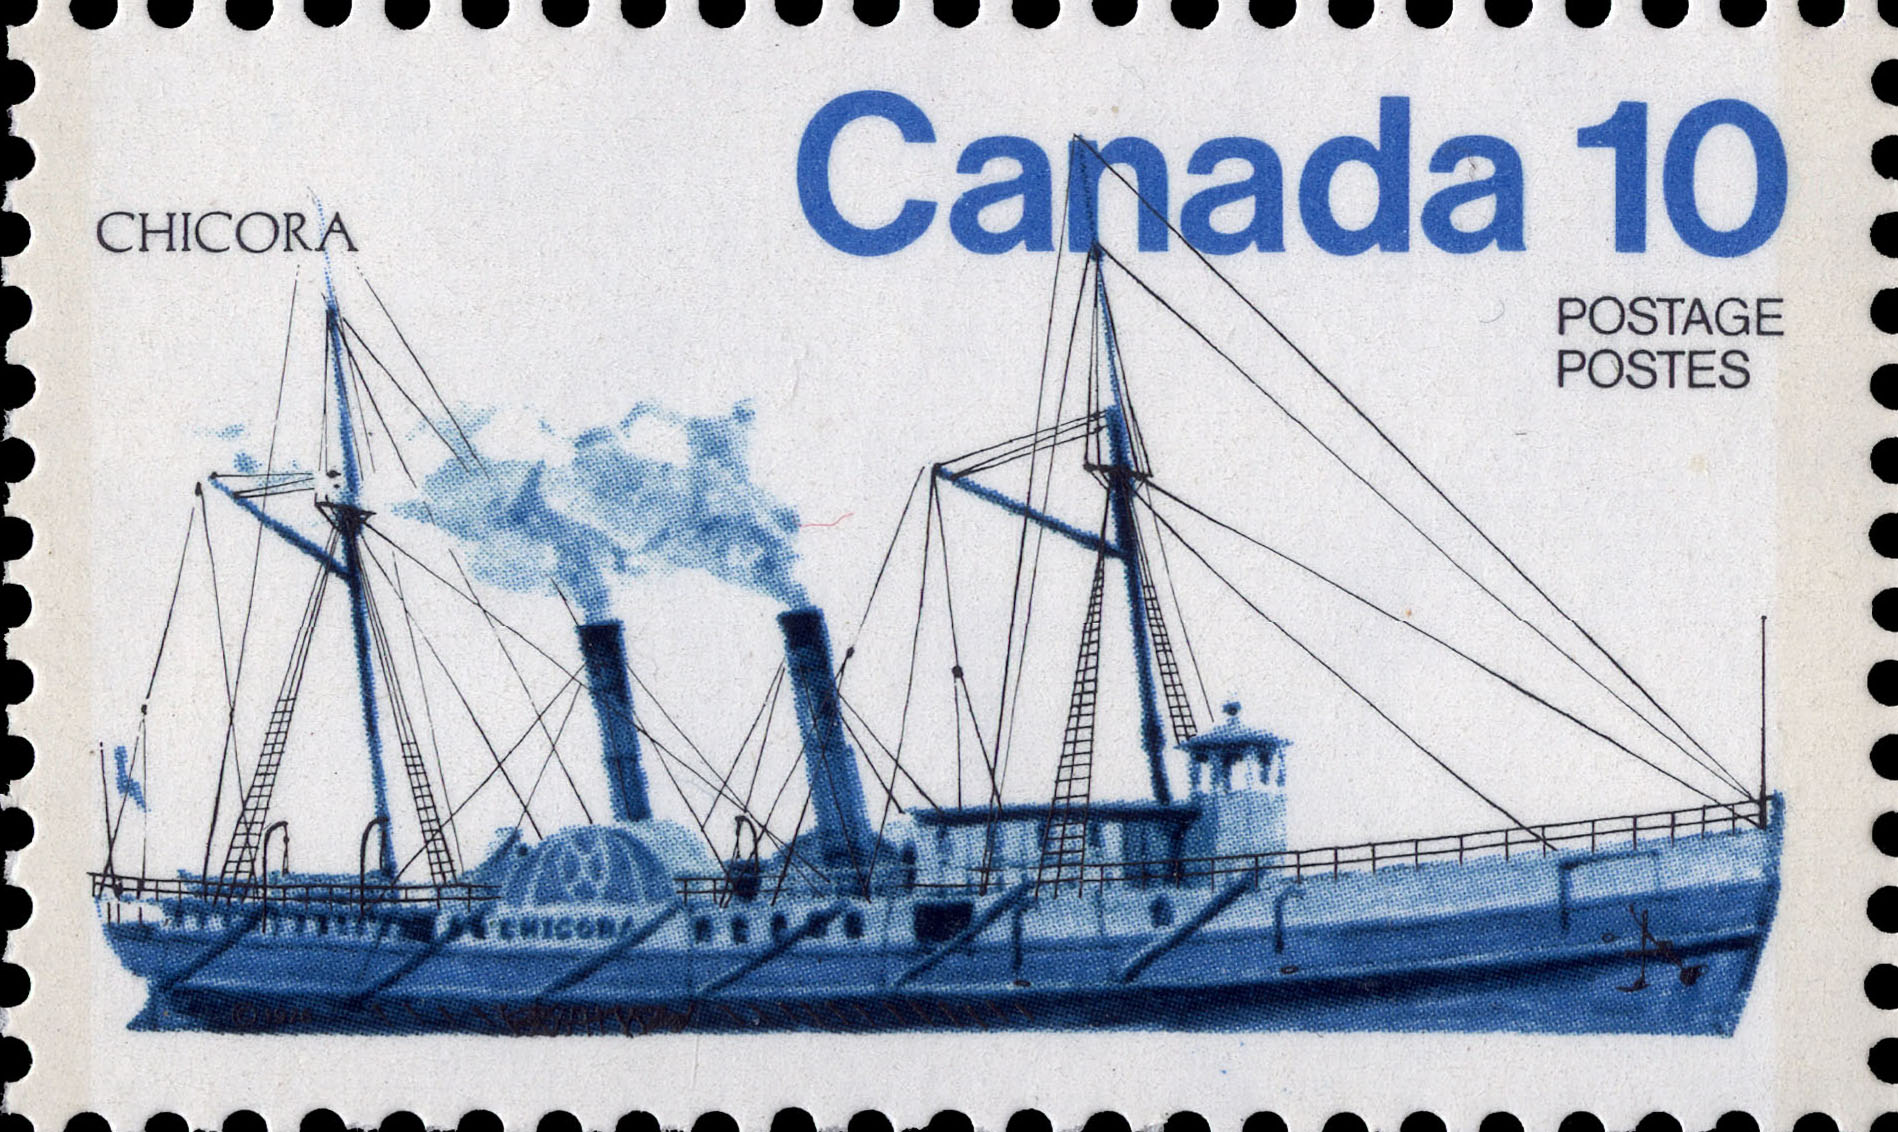 Chicora Canada Postage Stamp